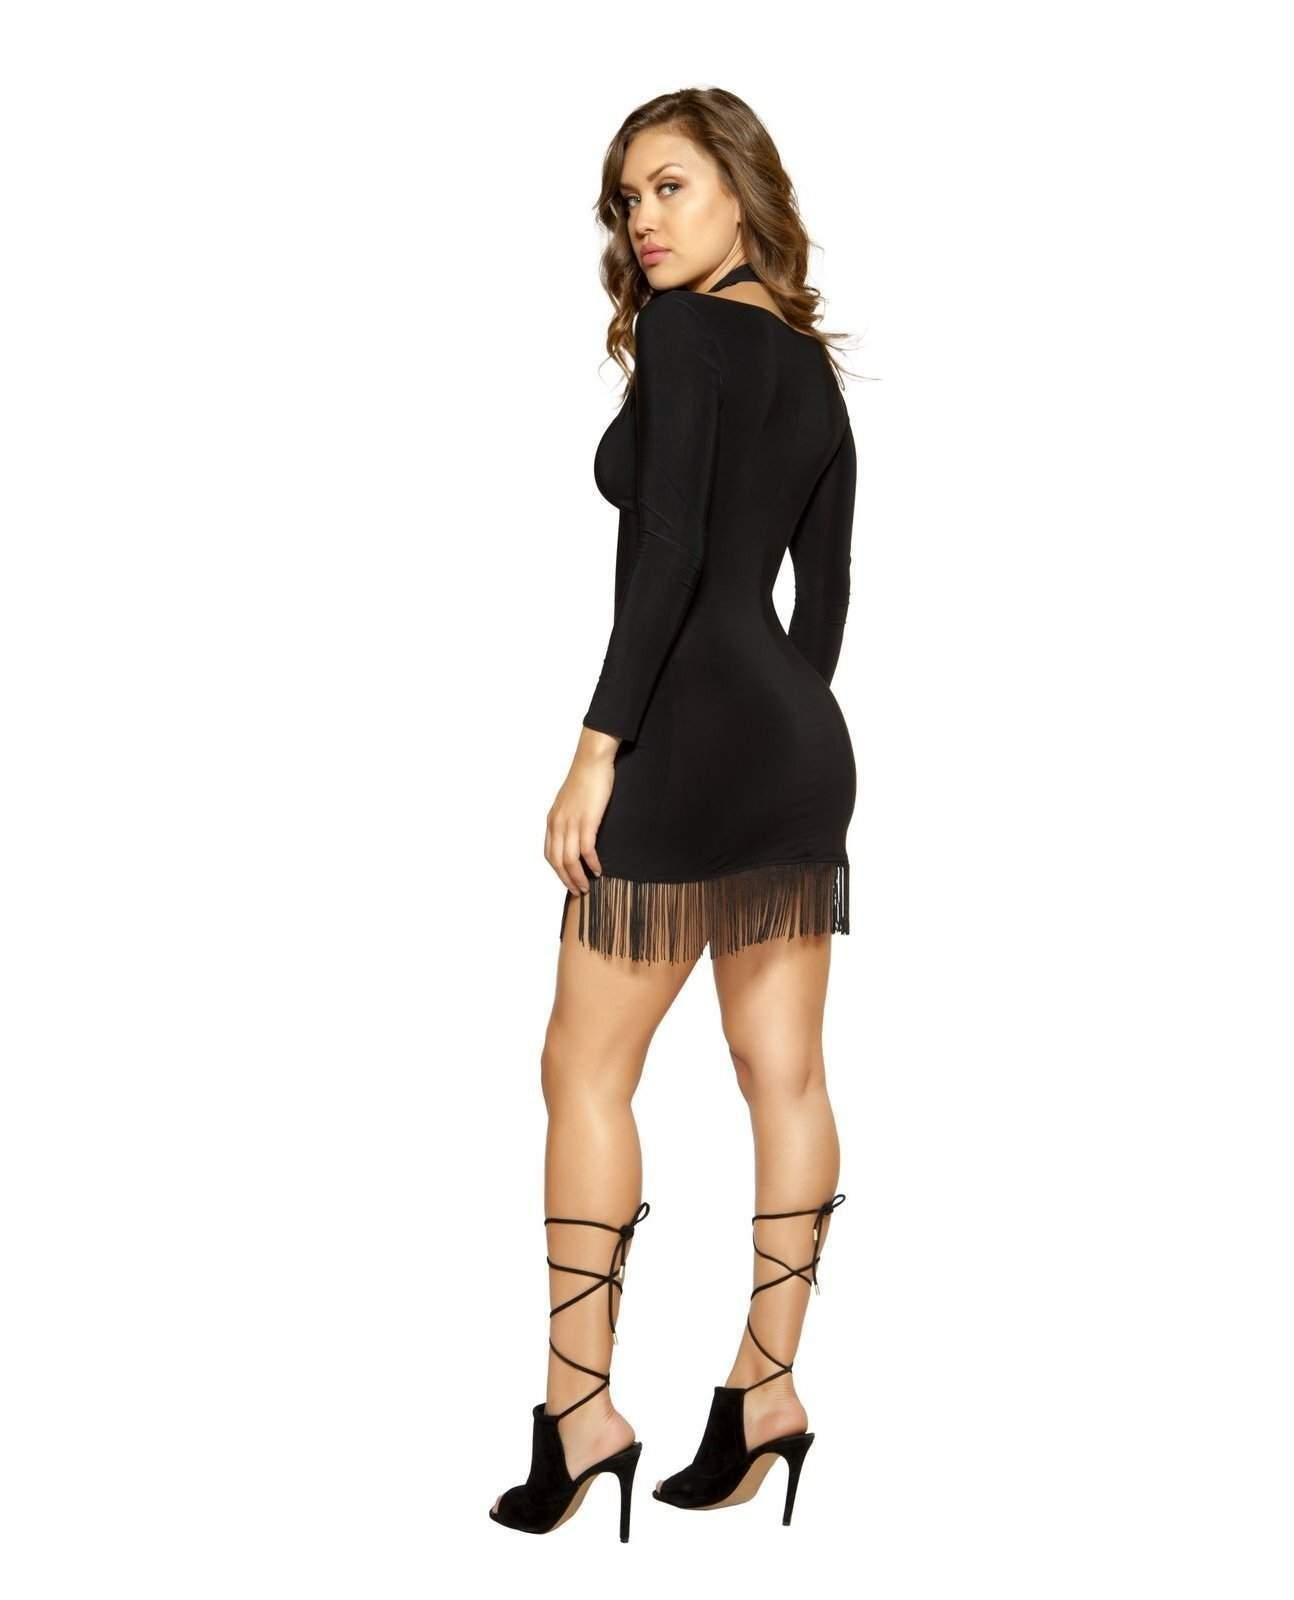 Strappy Dress with Hanging Fringe-club wear-Roma Costume-Nakees